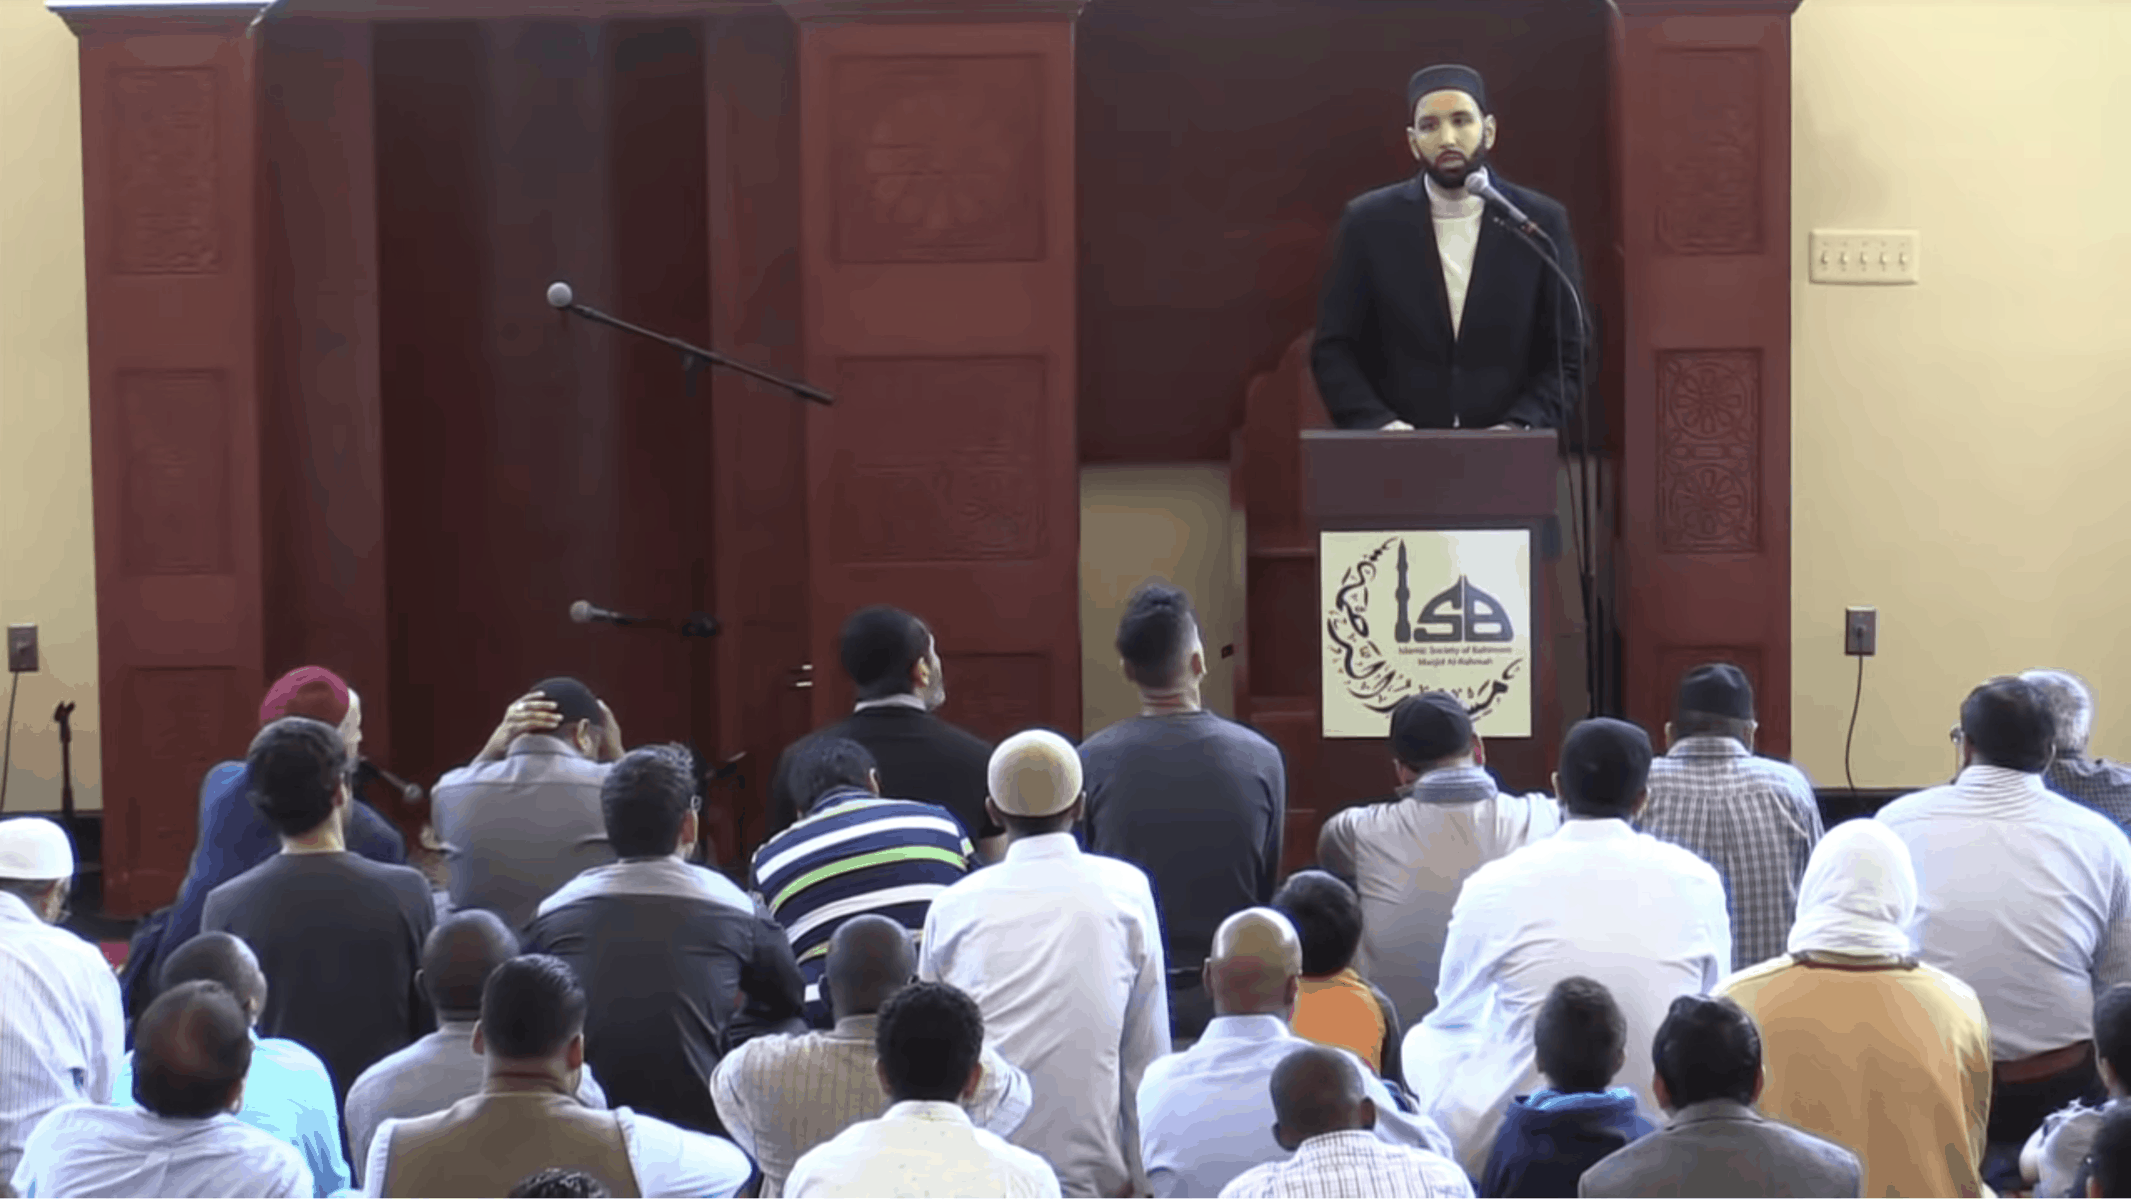 Omar Suleiman – Husnul-dhan: Assuming the Best